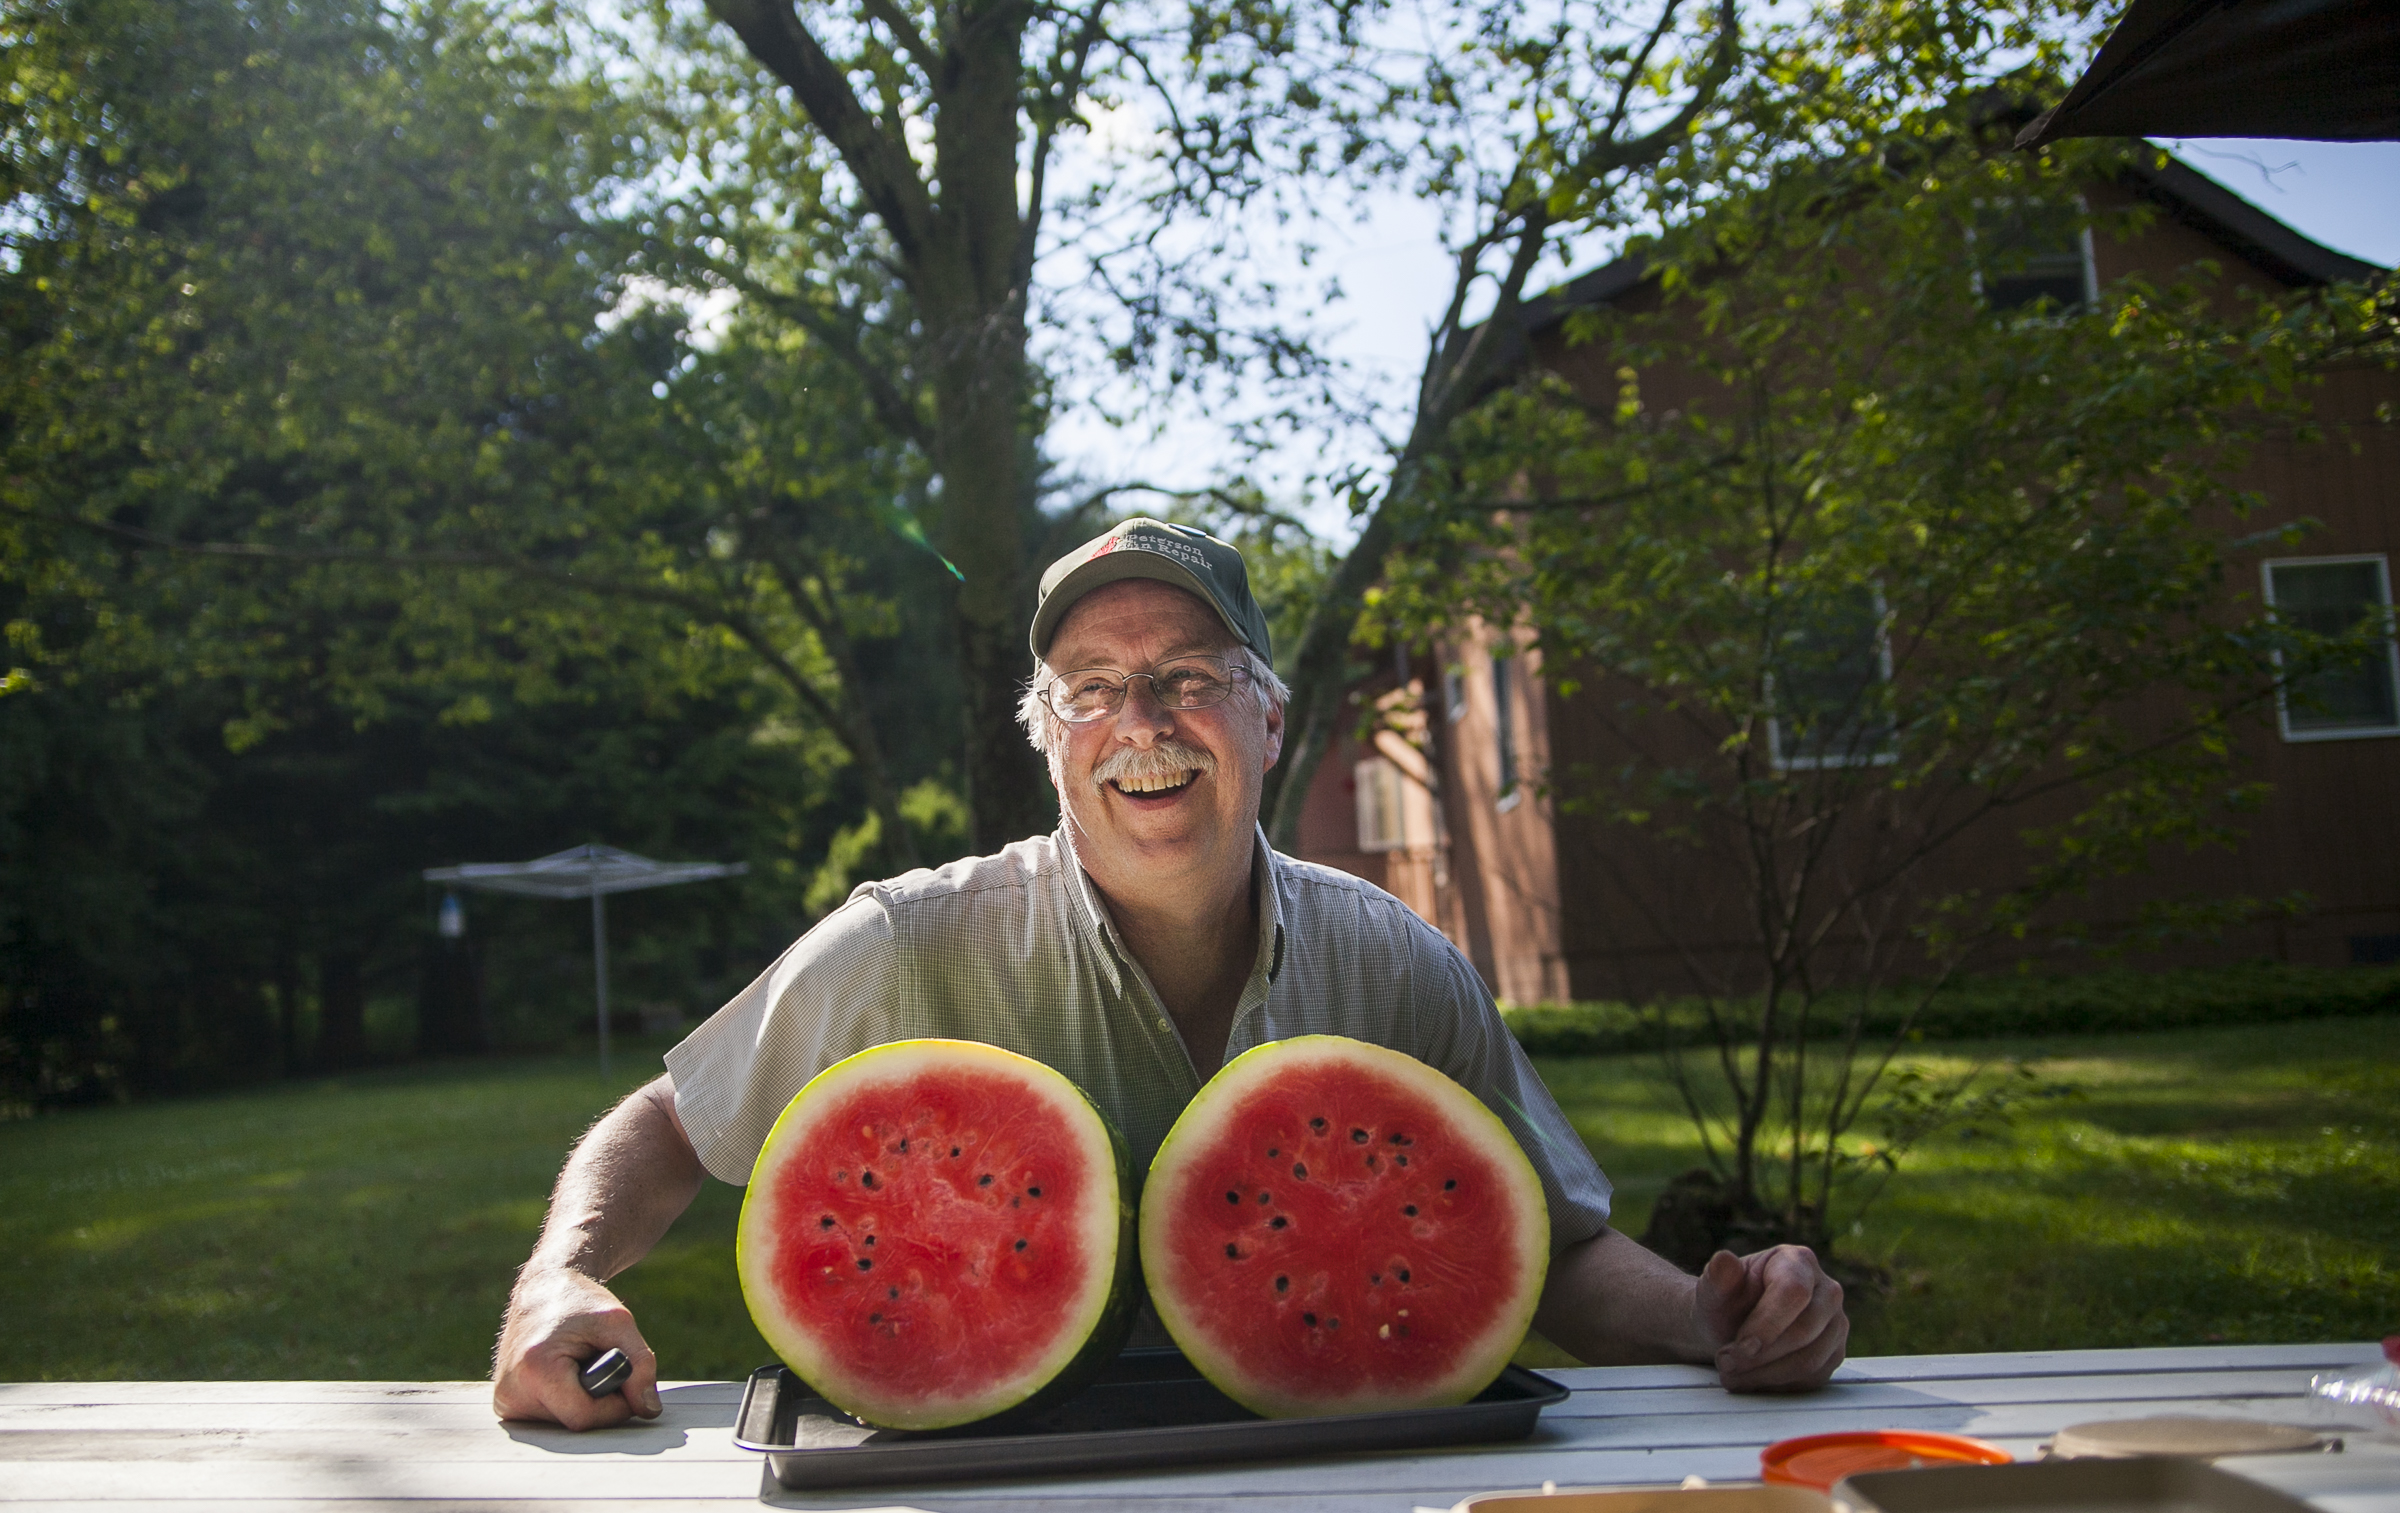 John Peterson poses with a watermelon he just chopped in half in Clarendon, Pa.